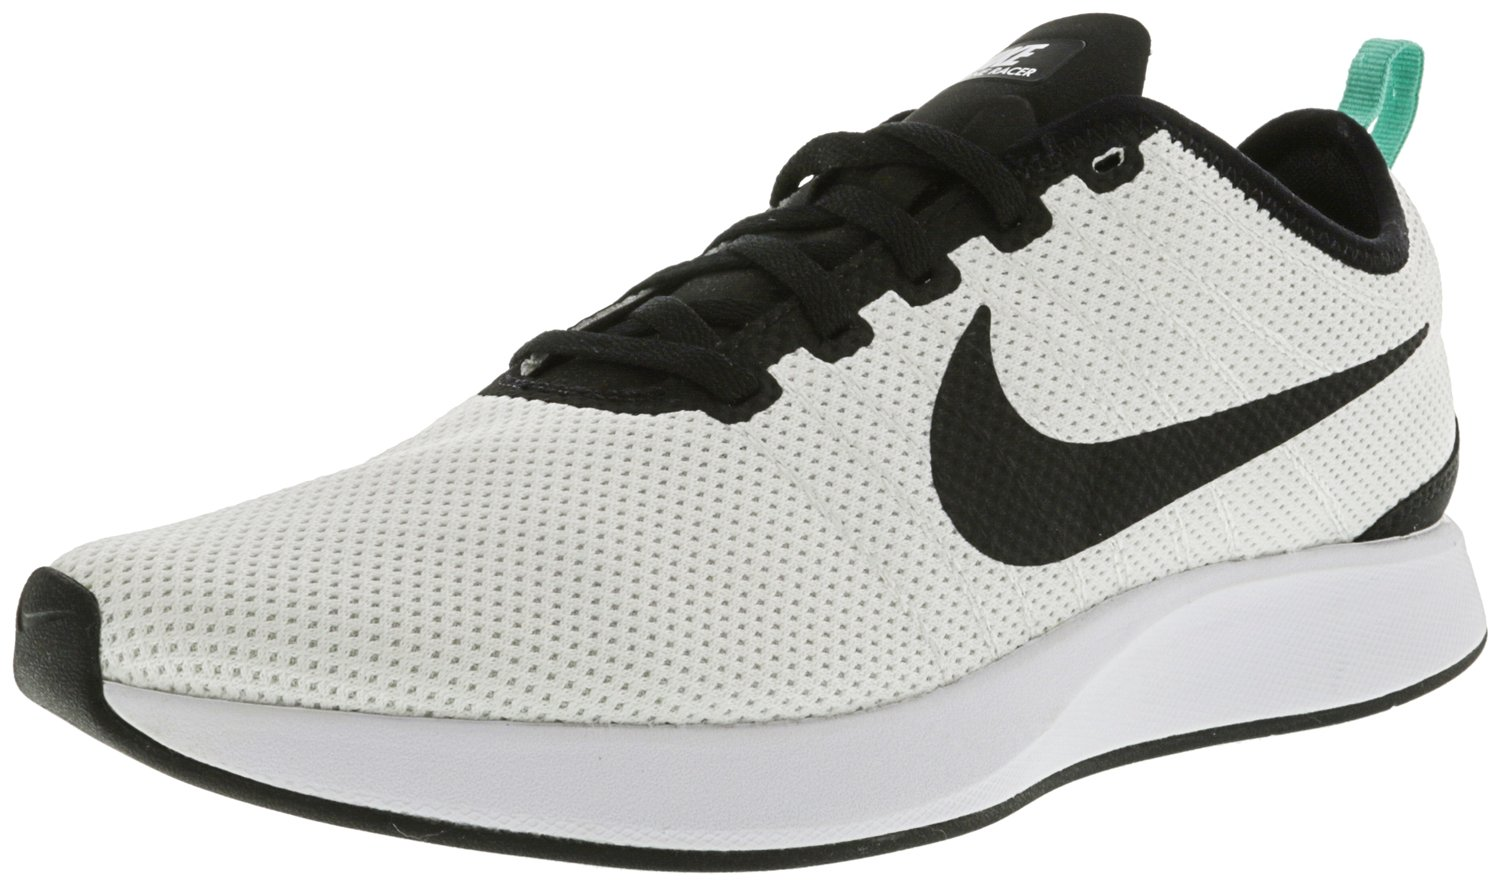 NIKE Men's Dualtone Racer Se Ankle-High Running Shoe B079QD4TYB 12.5 D(M) US|White/Black/Pure Platinum